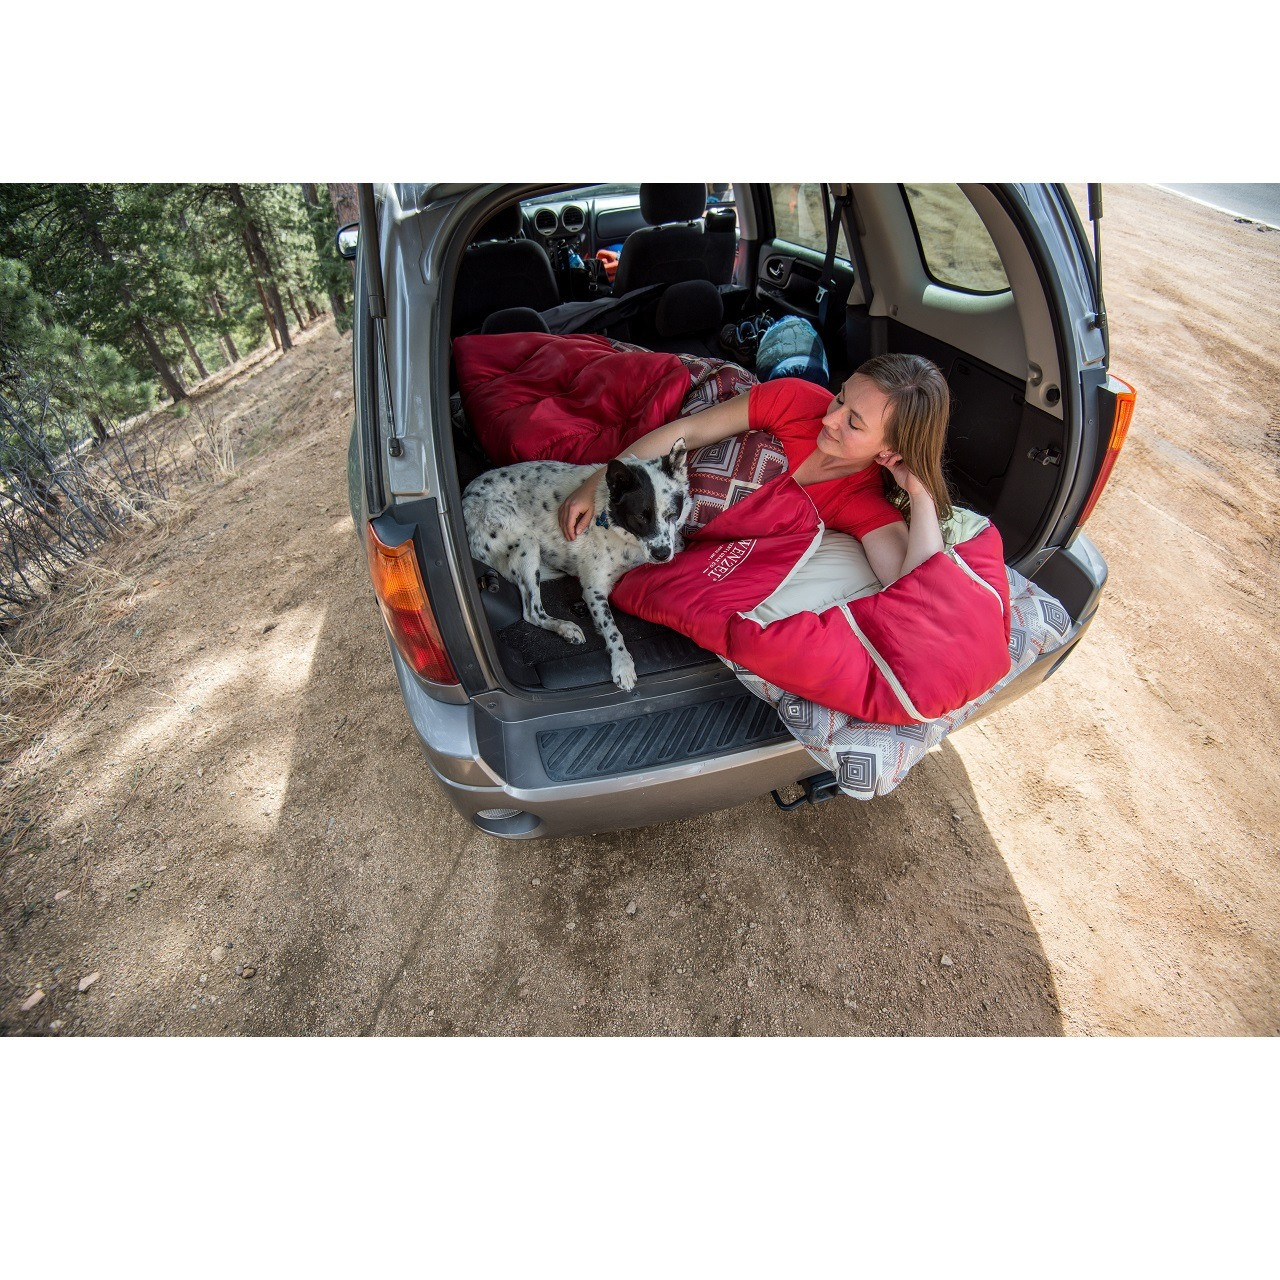 Woman laying in the back of a vehicle on a Wenzel sleeping pad in a Wenzel Pop-Top sleeping bag petting her dog laying near her